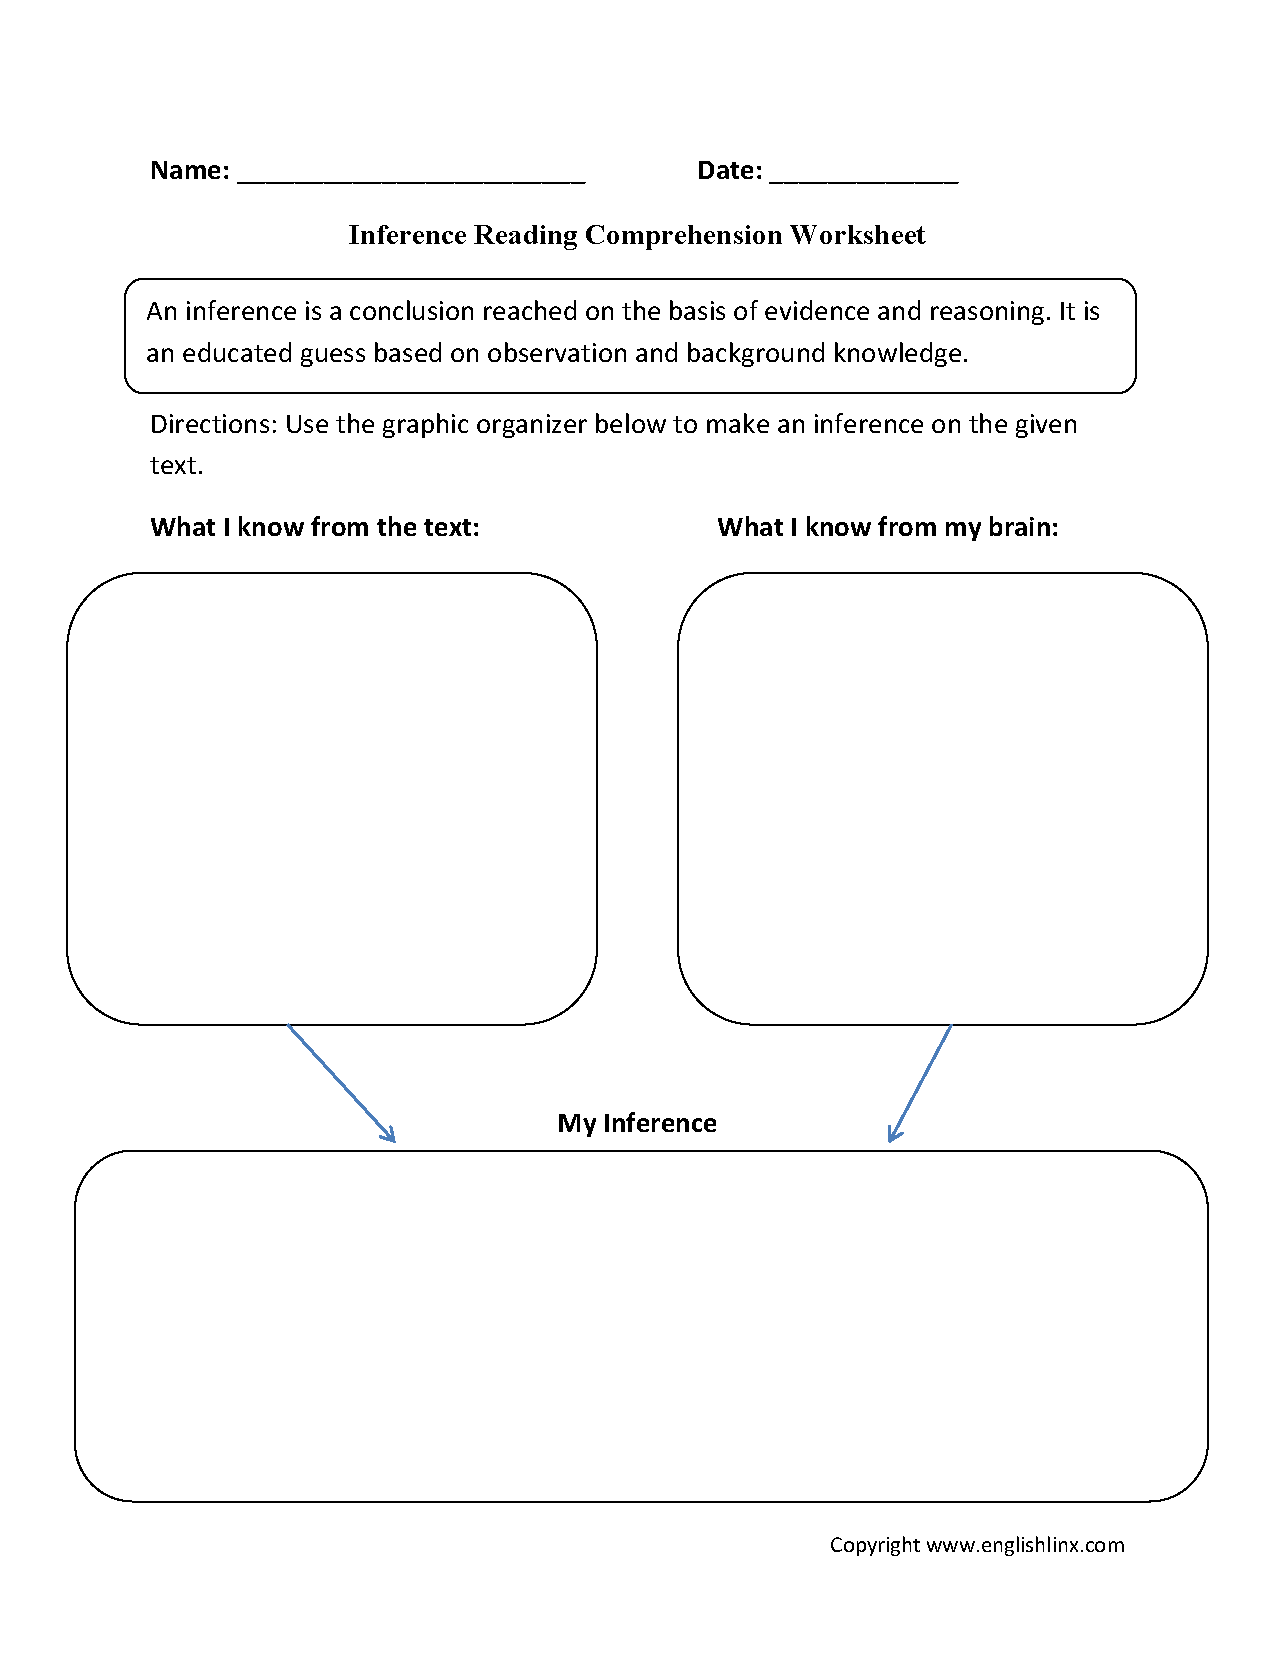 Worksheet Reading Comprehesion englishlinx com reading comprehension worksheets worksheets